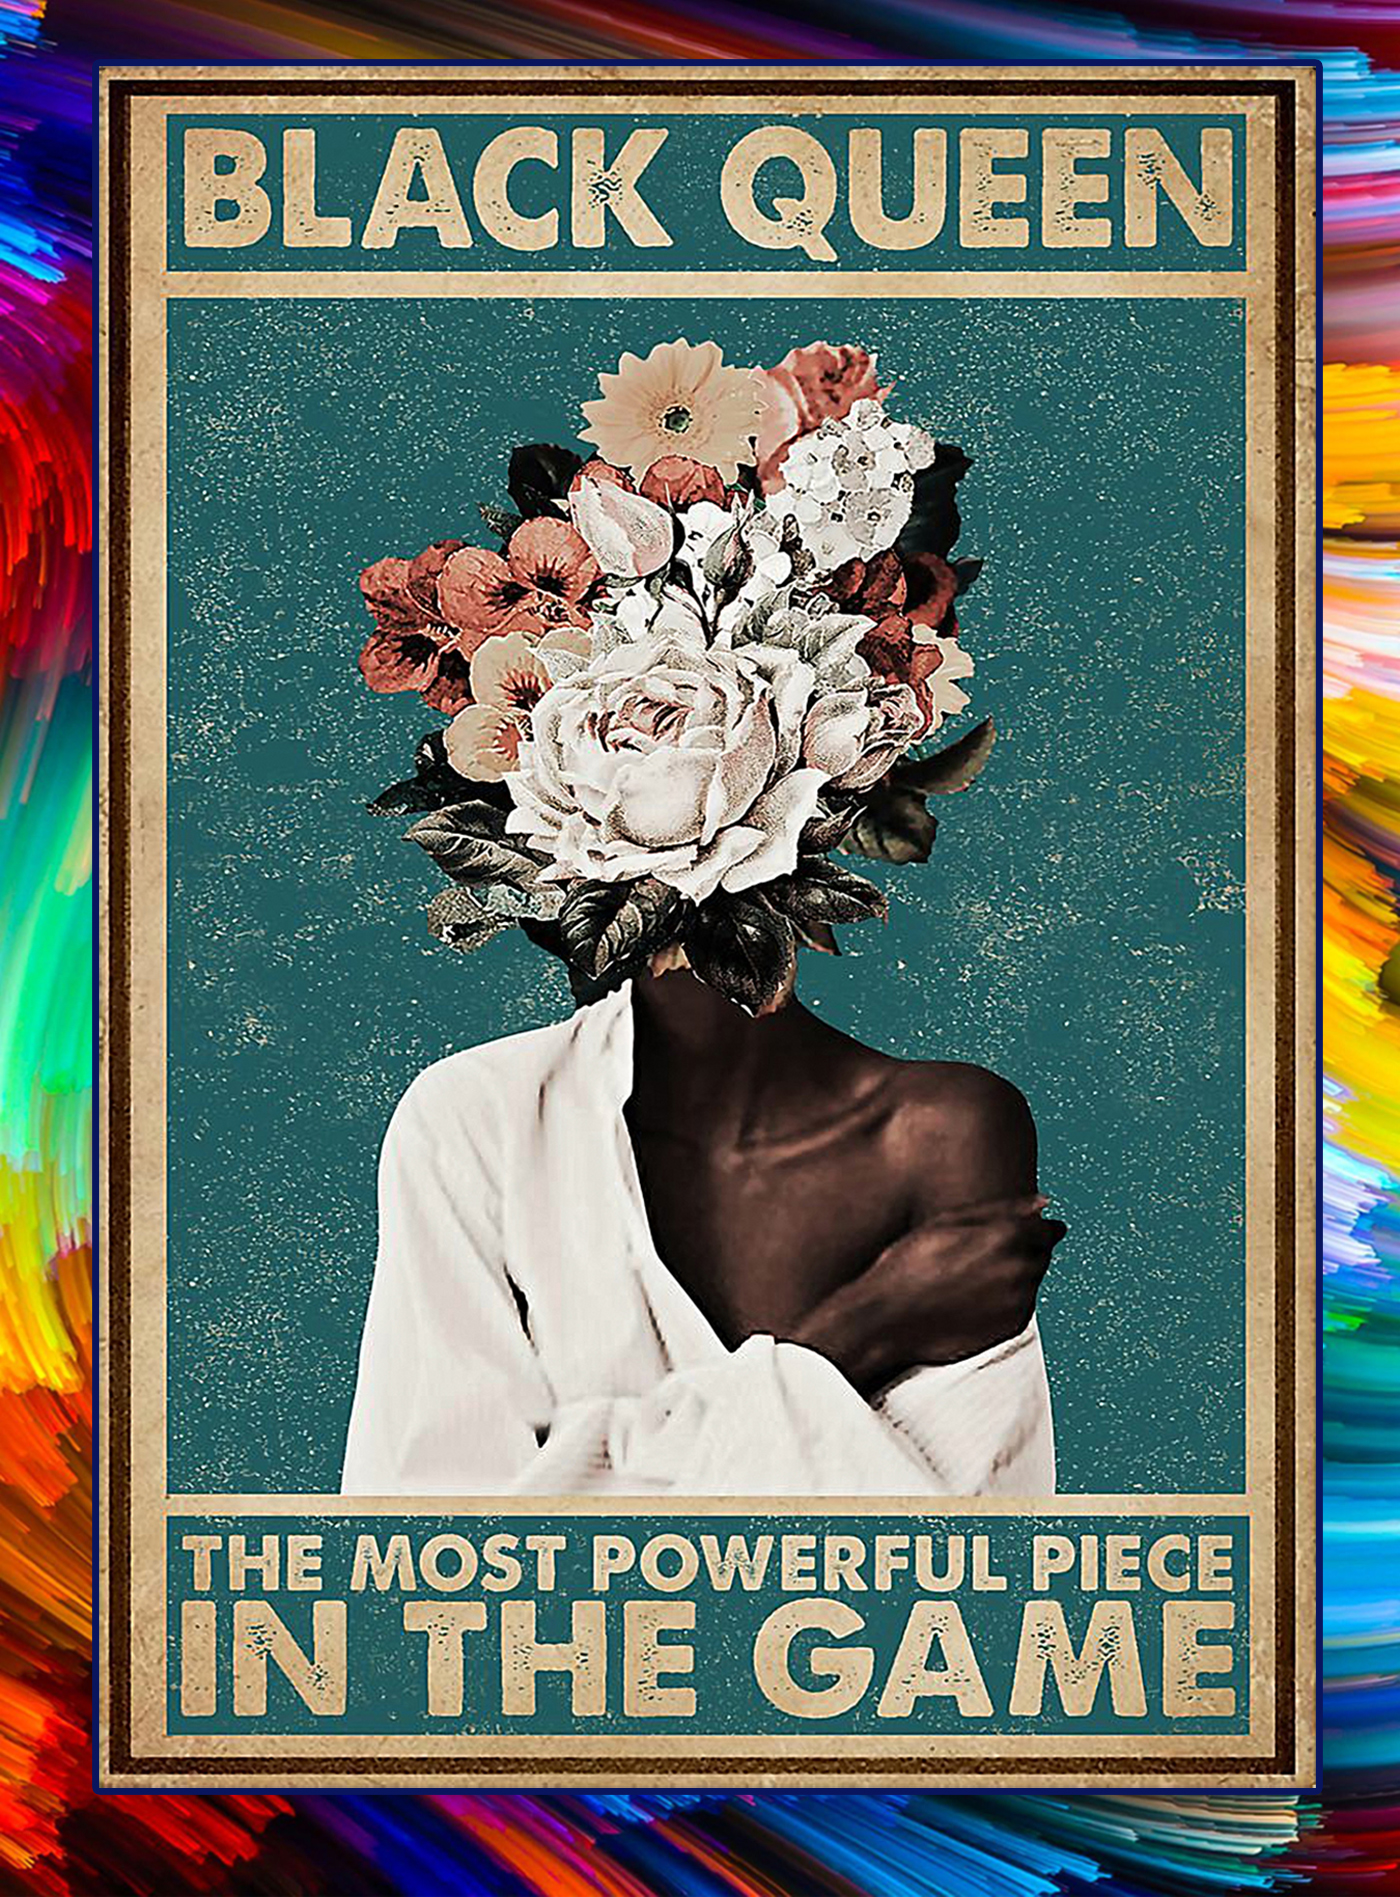 Flower black queen the most powerful piece in the game poster - A1